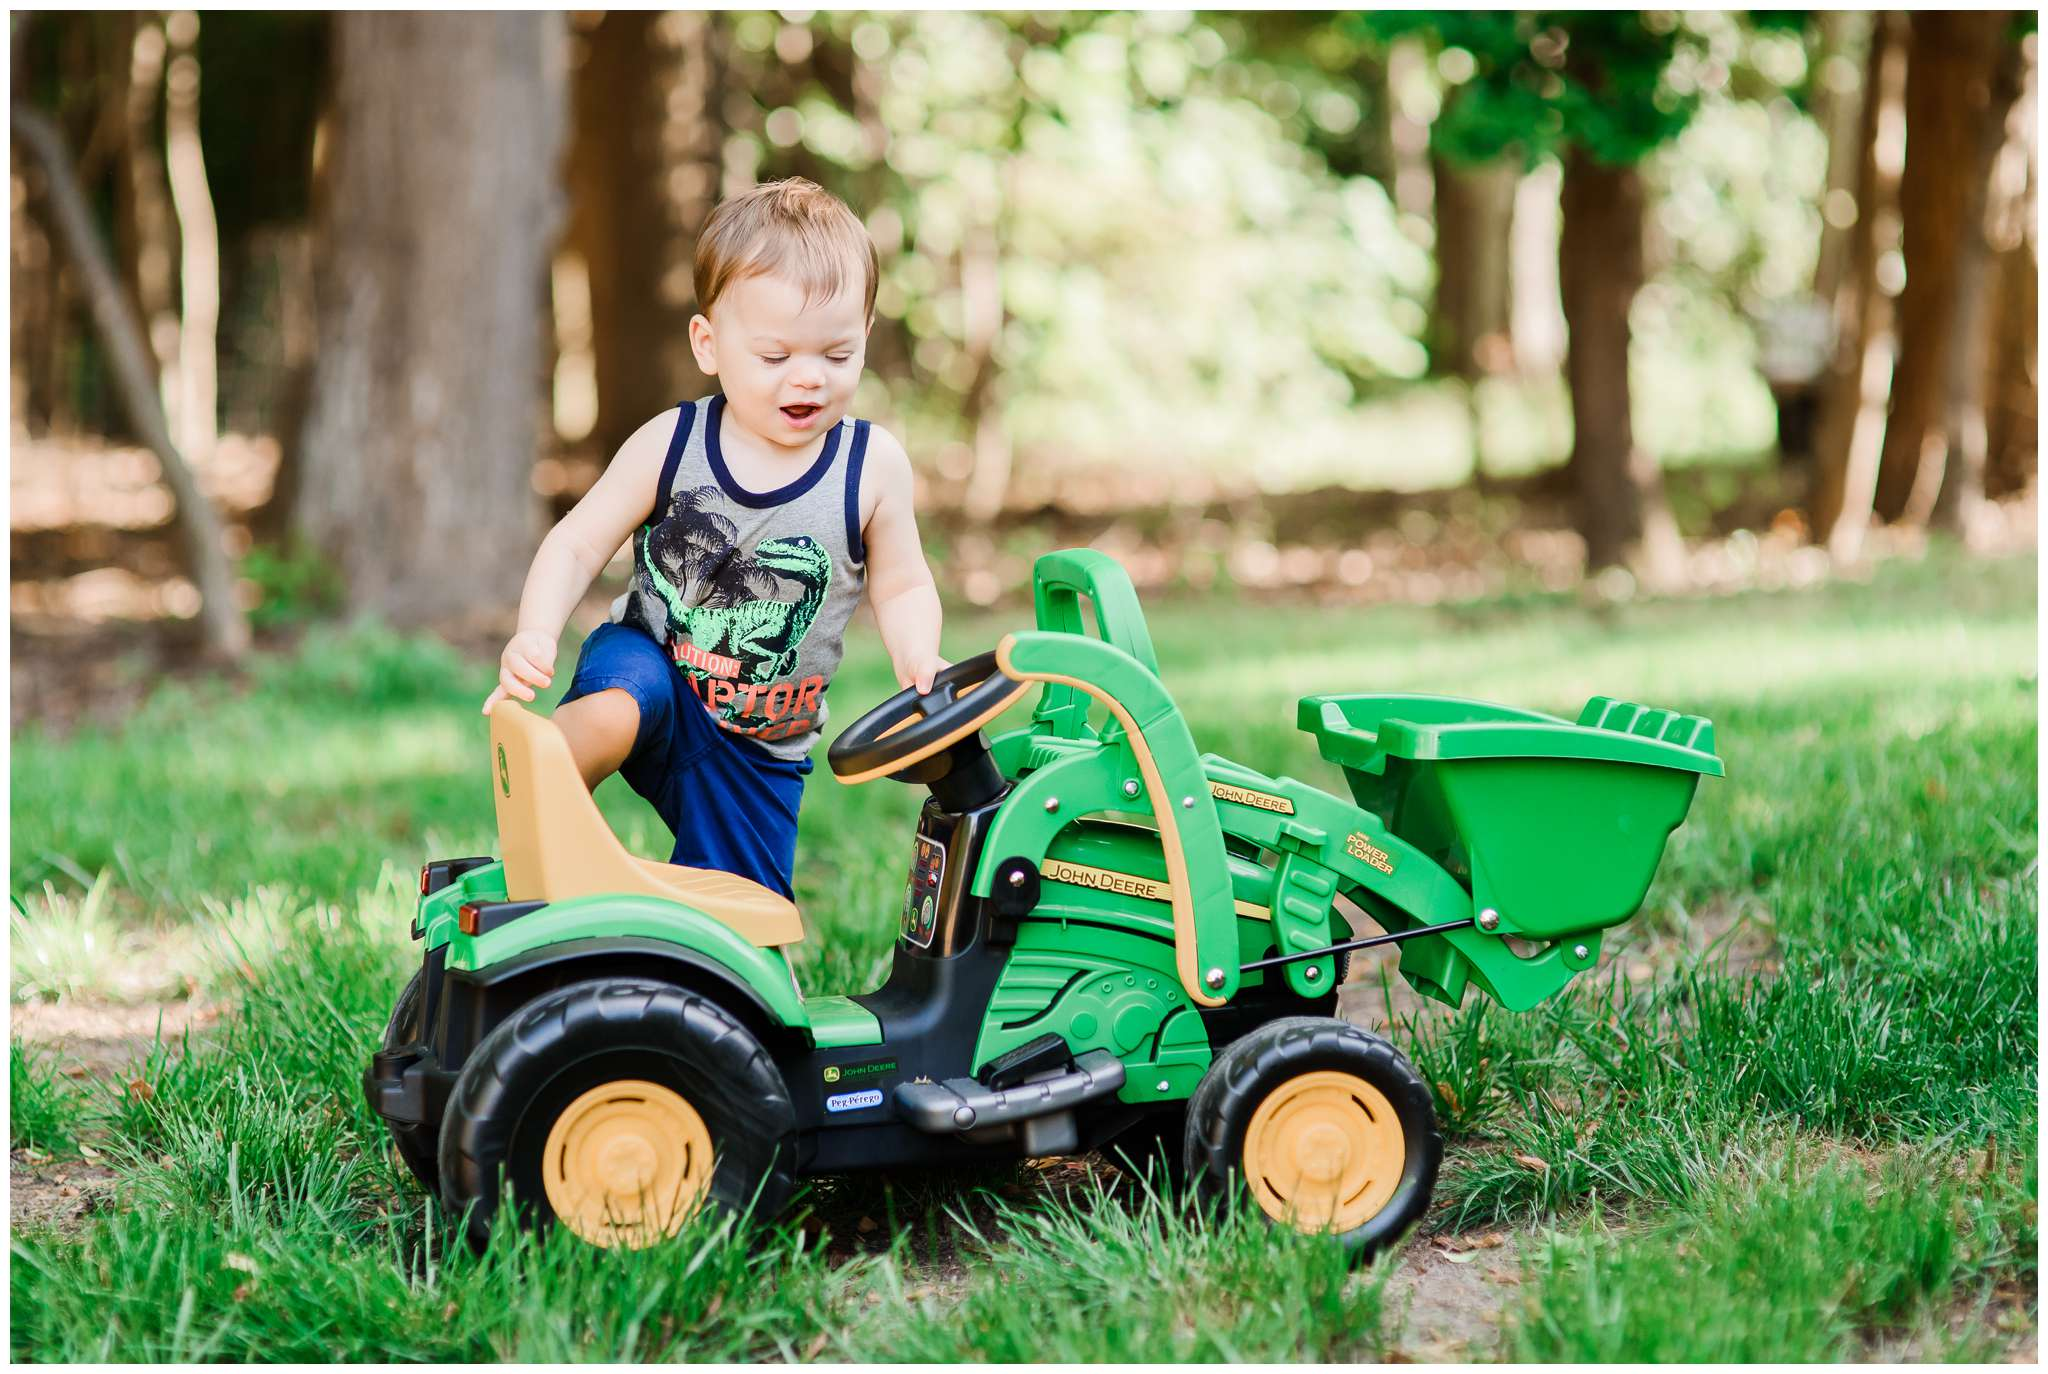 Liam and Tractor_4009.jpg